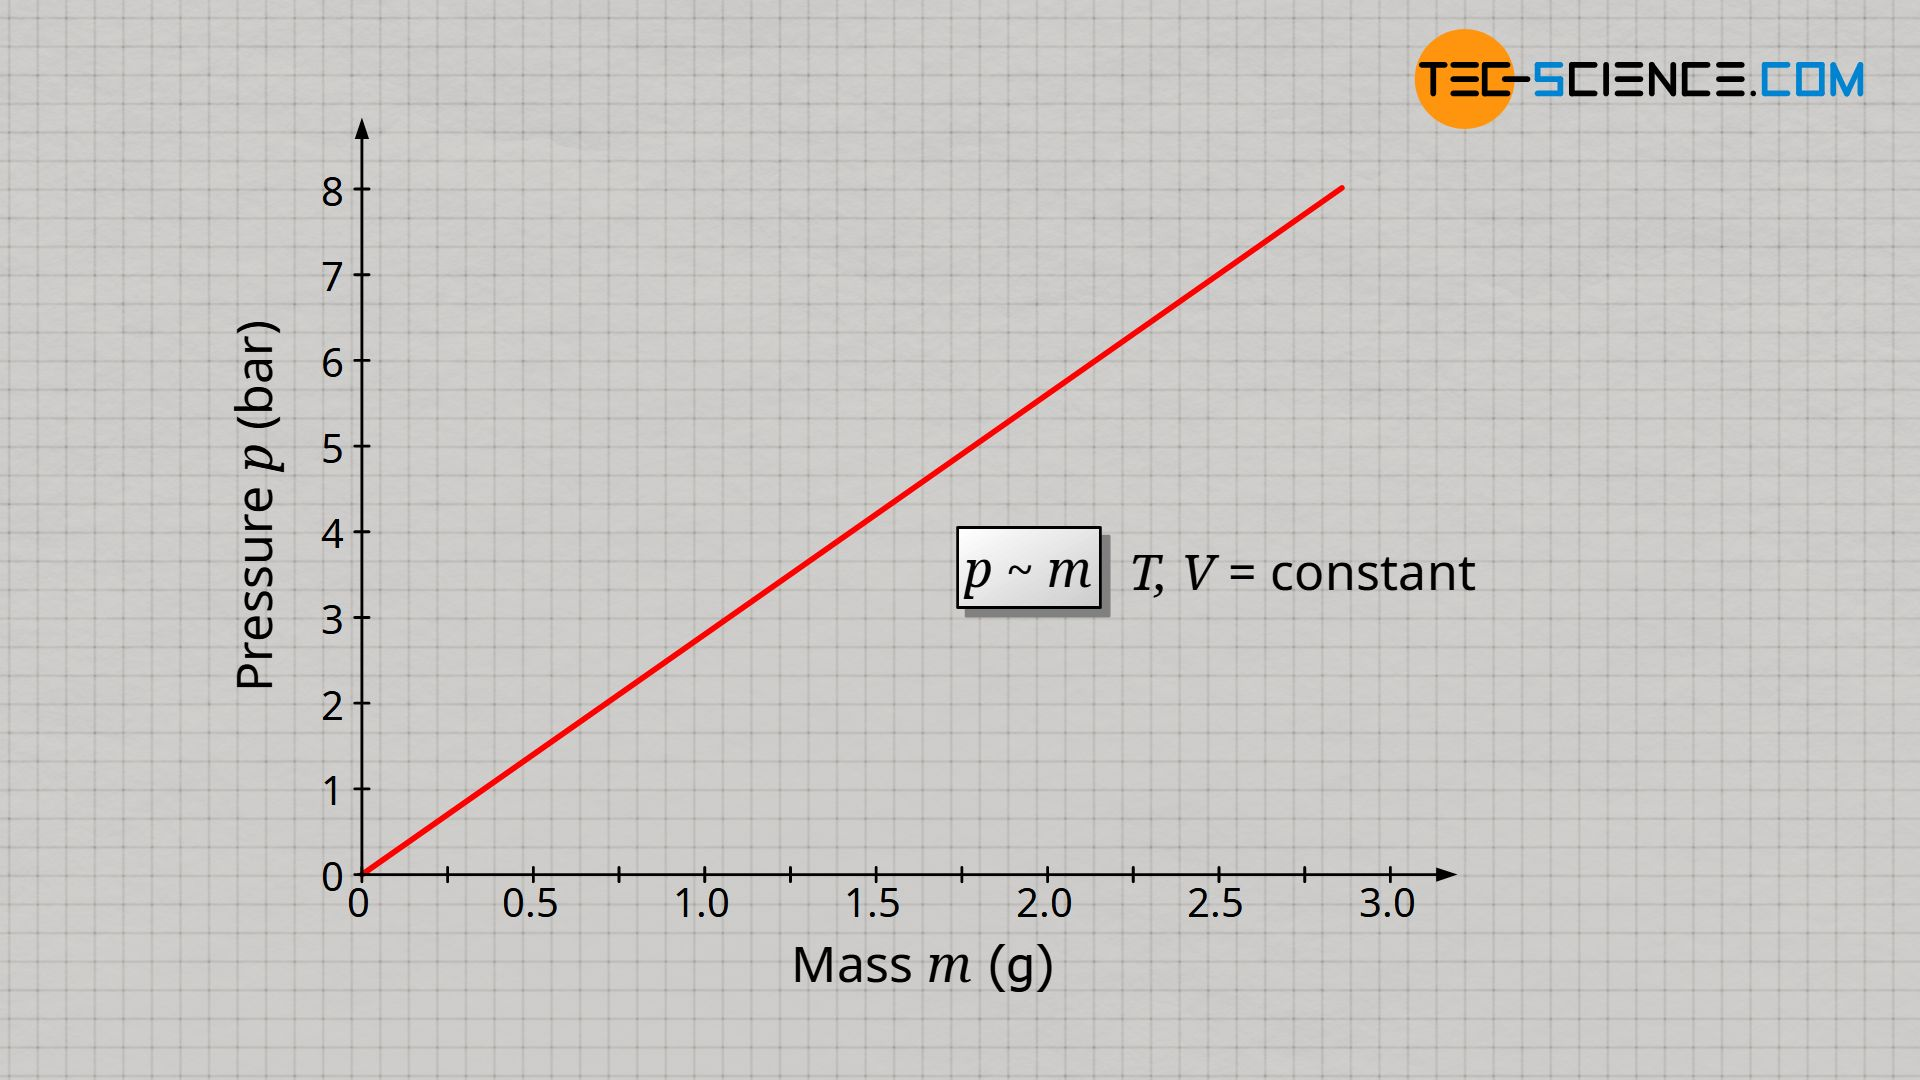 Proportional relationship between gas pressure and gas mass at constant temperature and constant volume